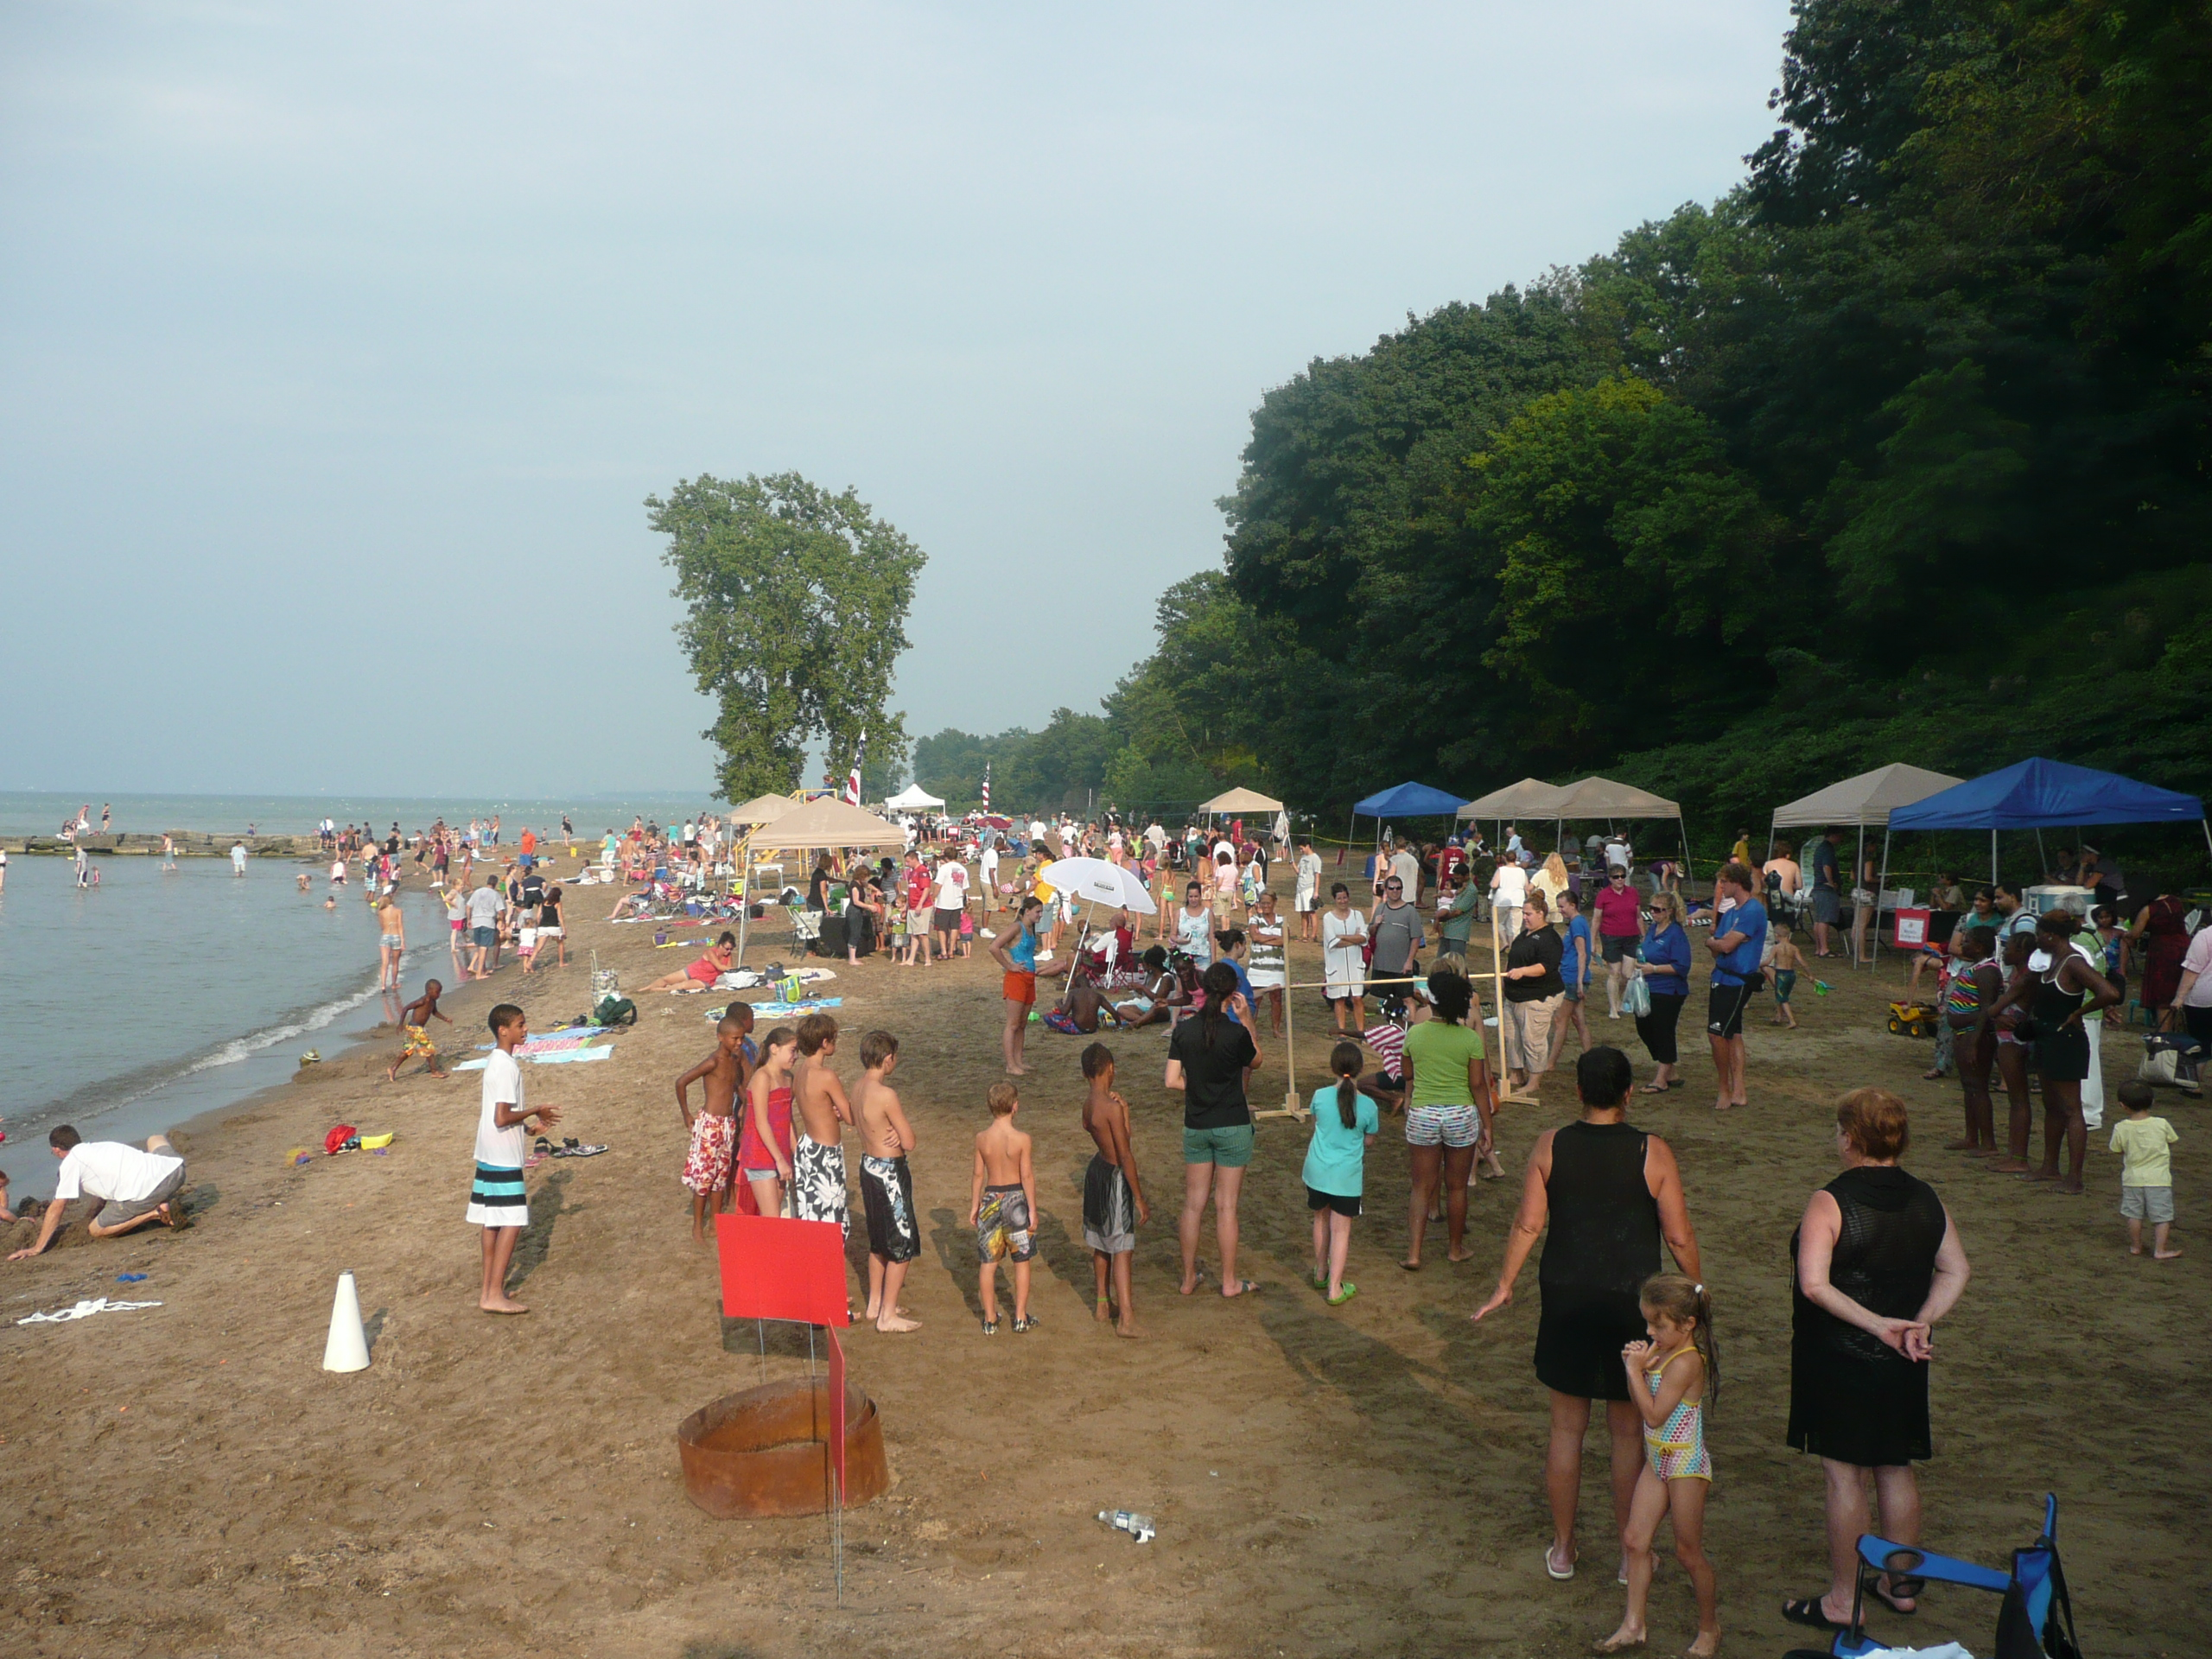 COME OUT AND PLAY ON THE BEACH AT CLEVELAND METROPARKS SUMMER BEACH PARTY